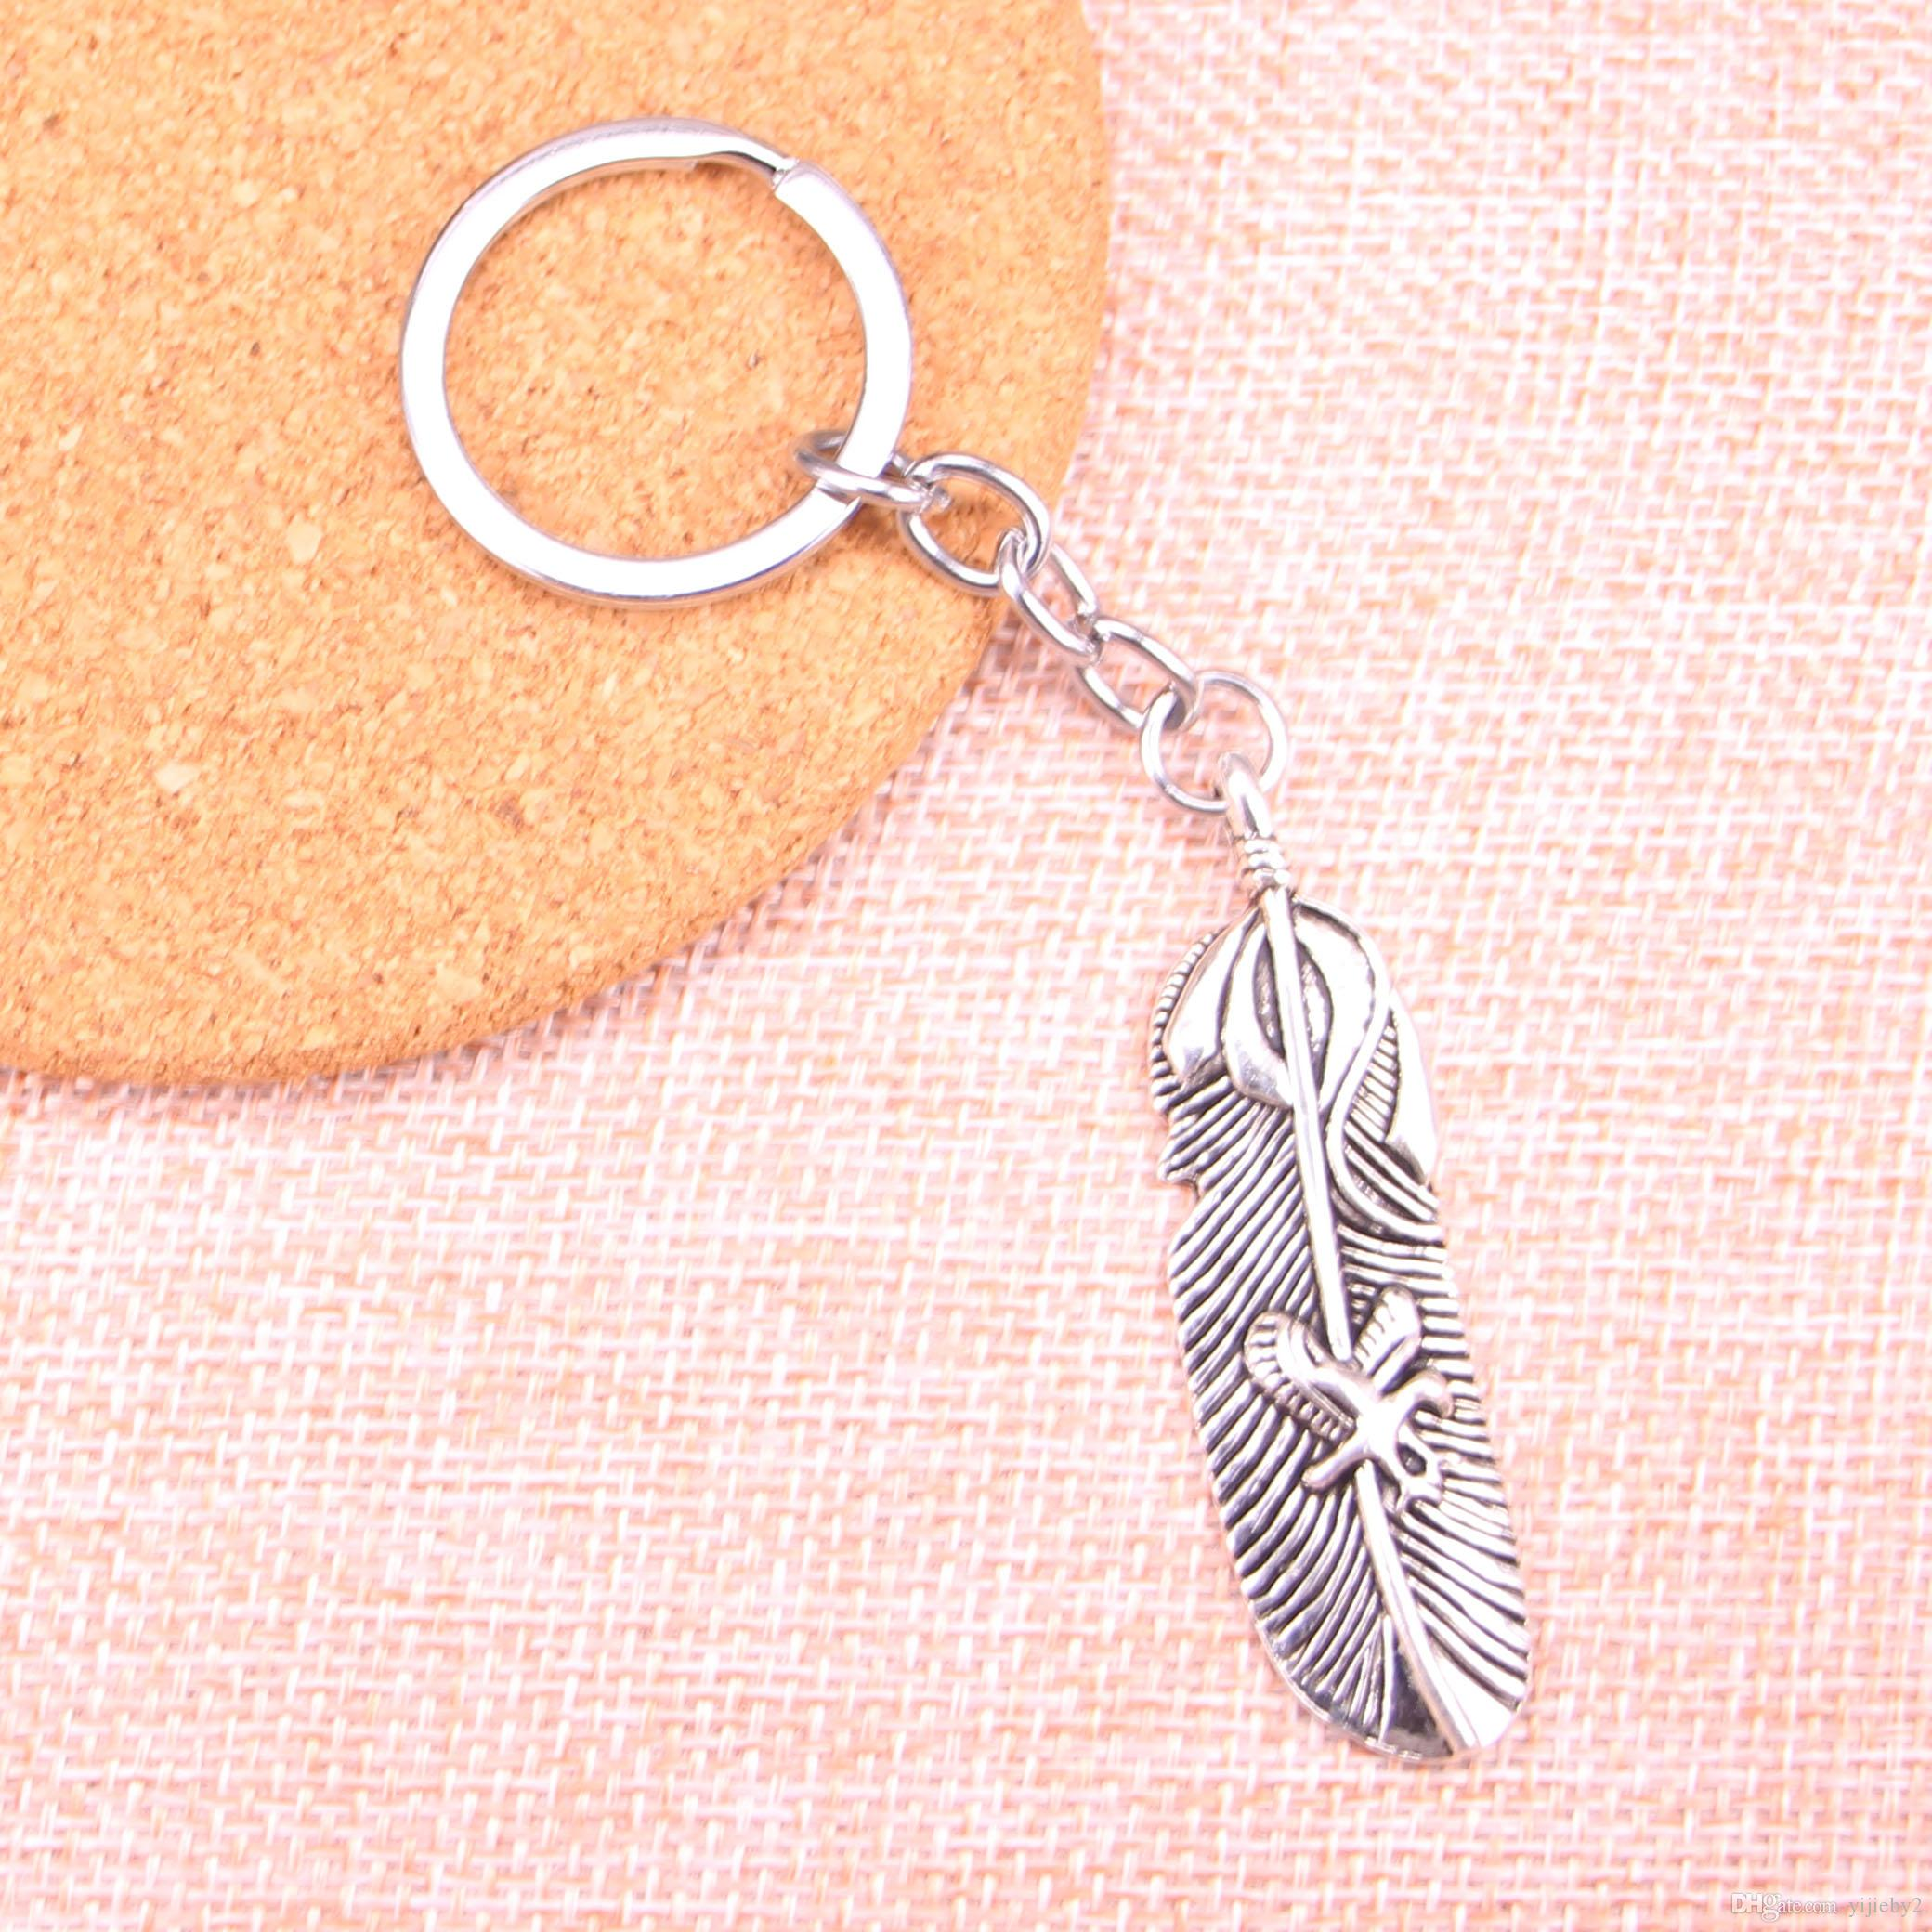 Fashion 28mm Key Ring Metal Key Chain Keychain Jewelry Antique Silver Plated feather eagle 56*15mm Pendant